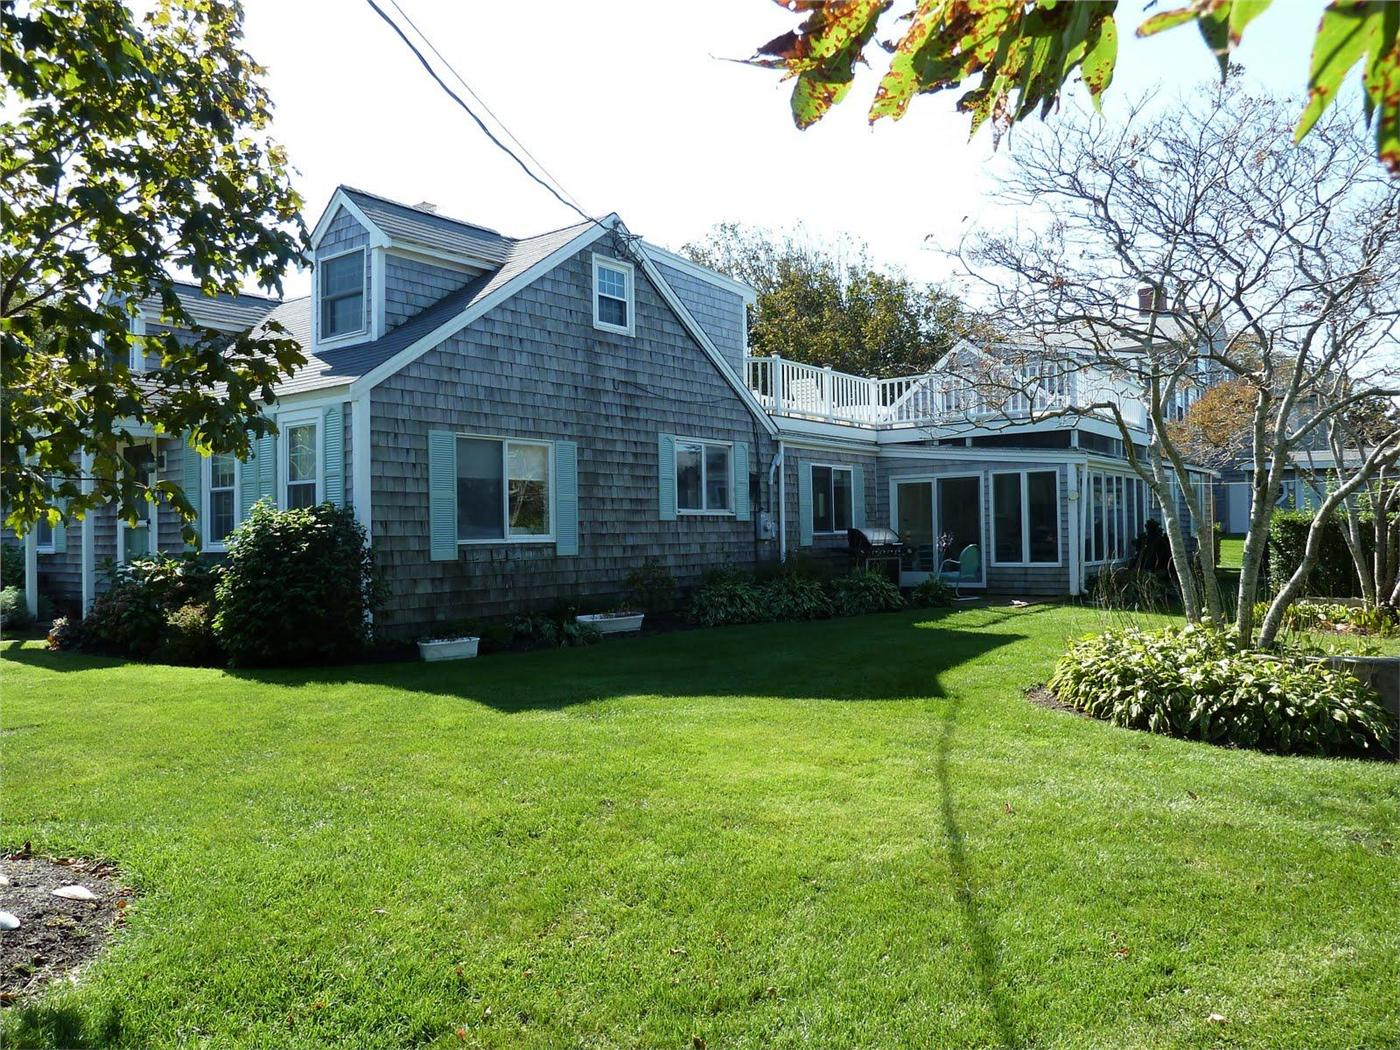 Dennis Vacation Rental Home In Cape Cod Ma 02641 Sea